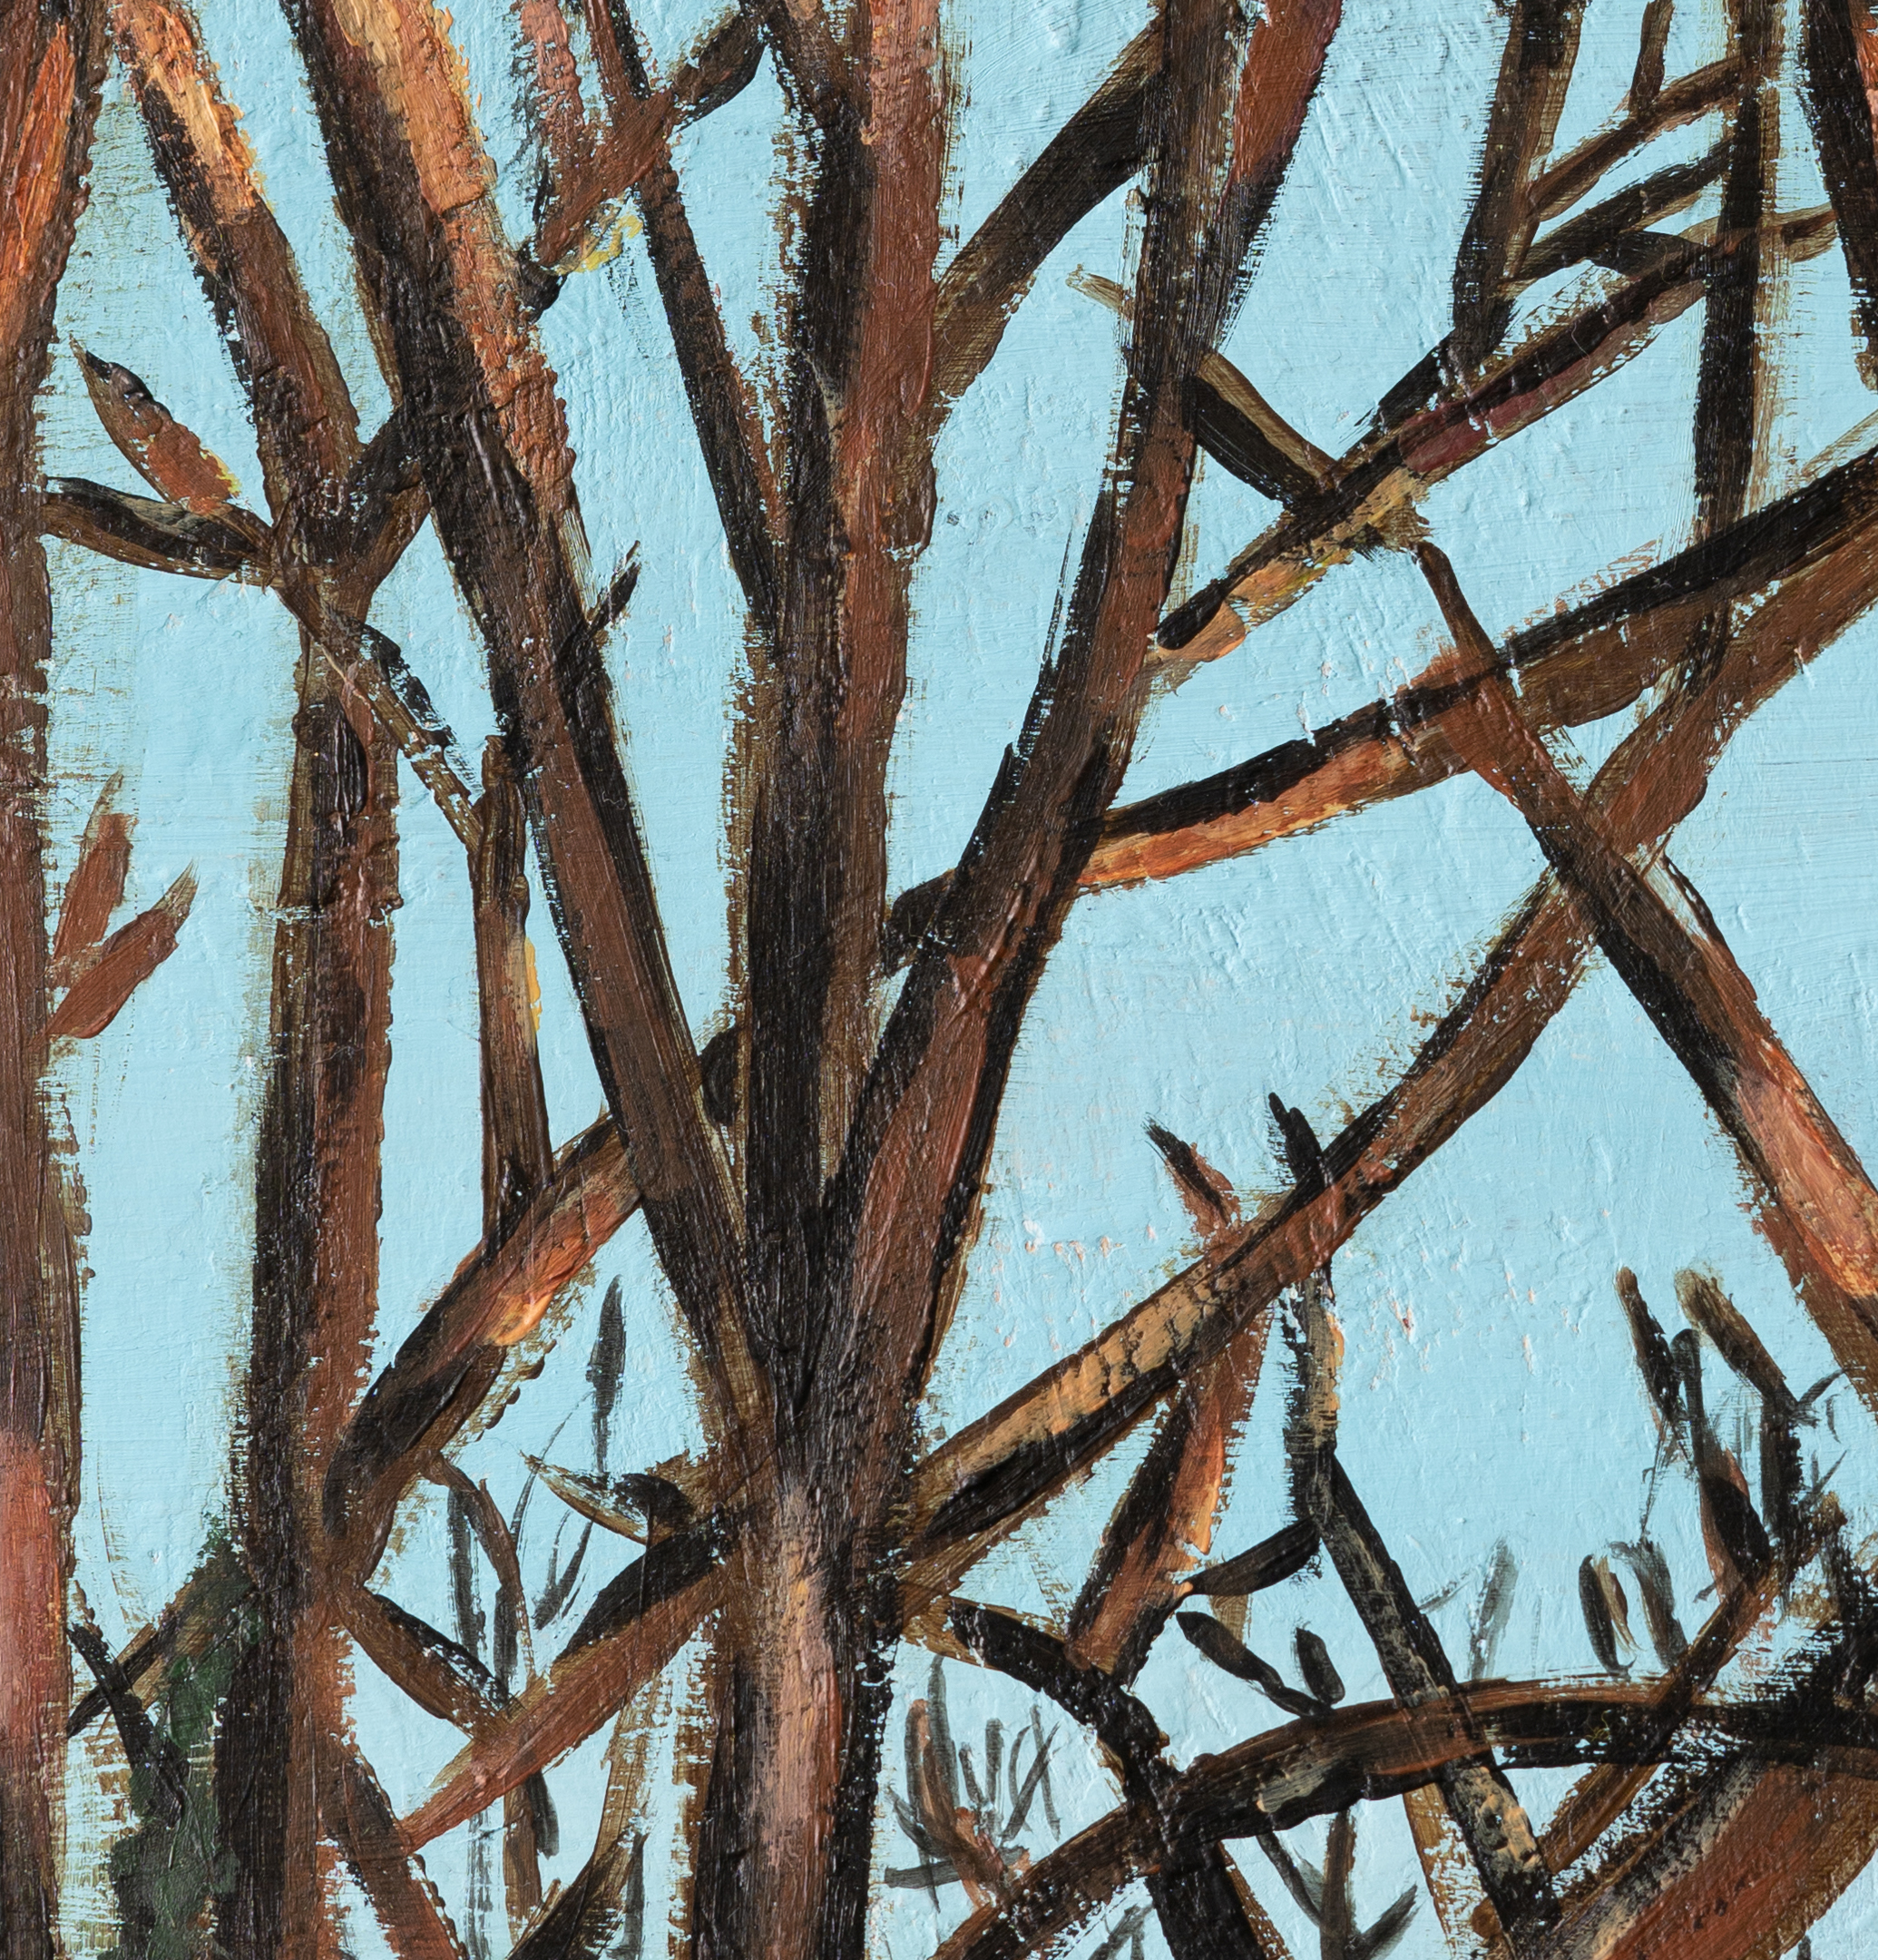 Painting trees and Isaiah 60v1 image download